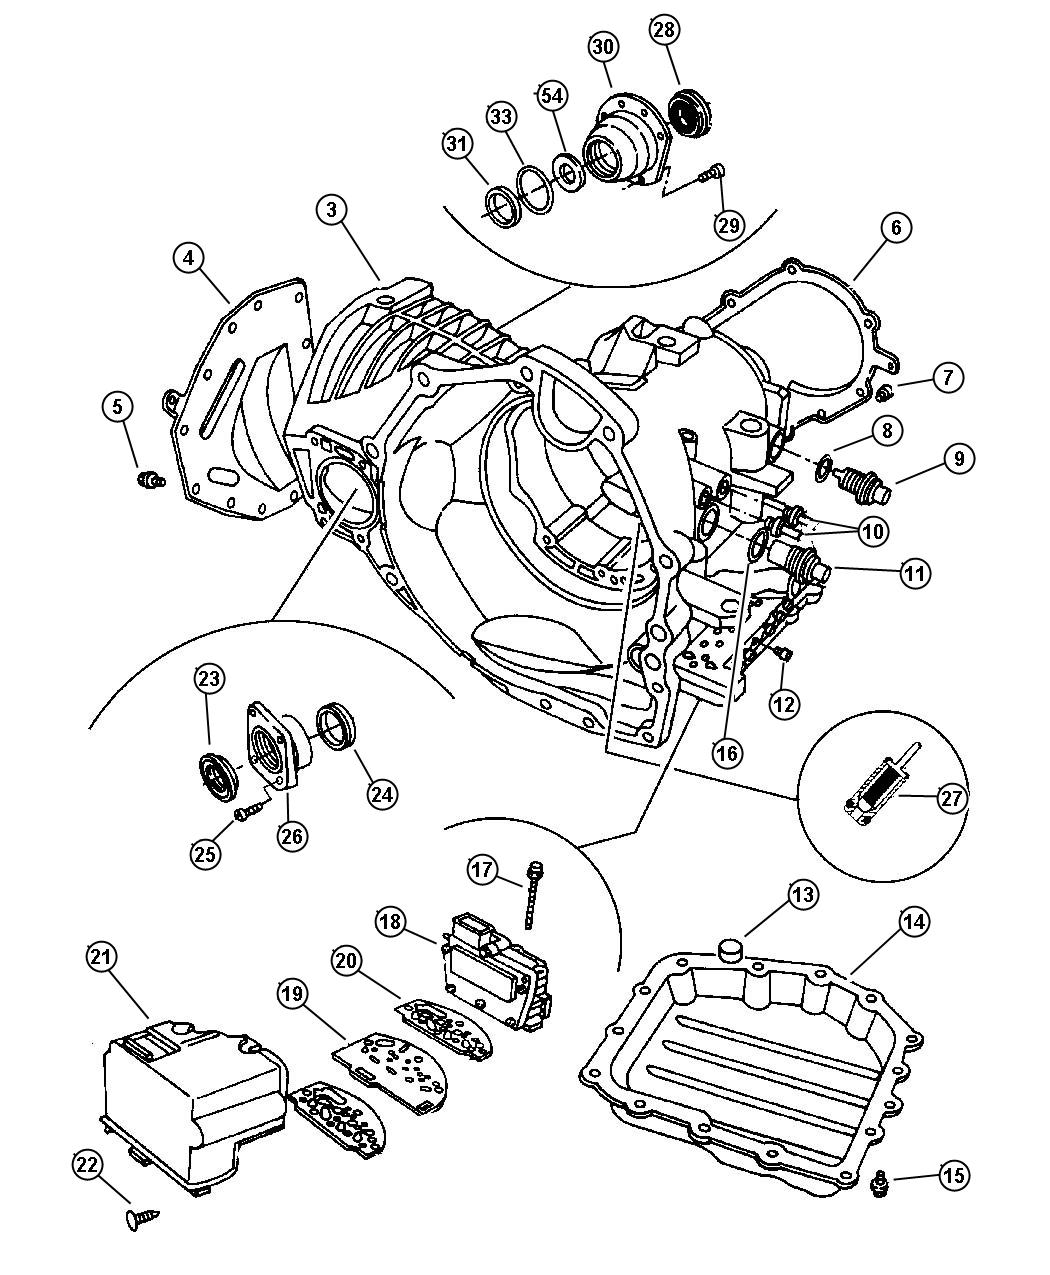 Chrysler Intrepid Wiring Diagram